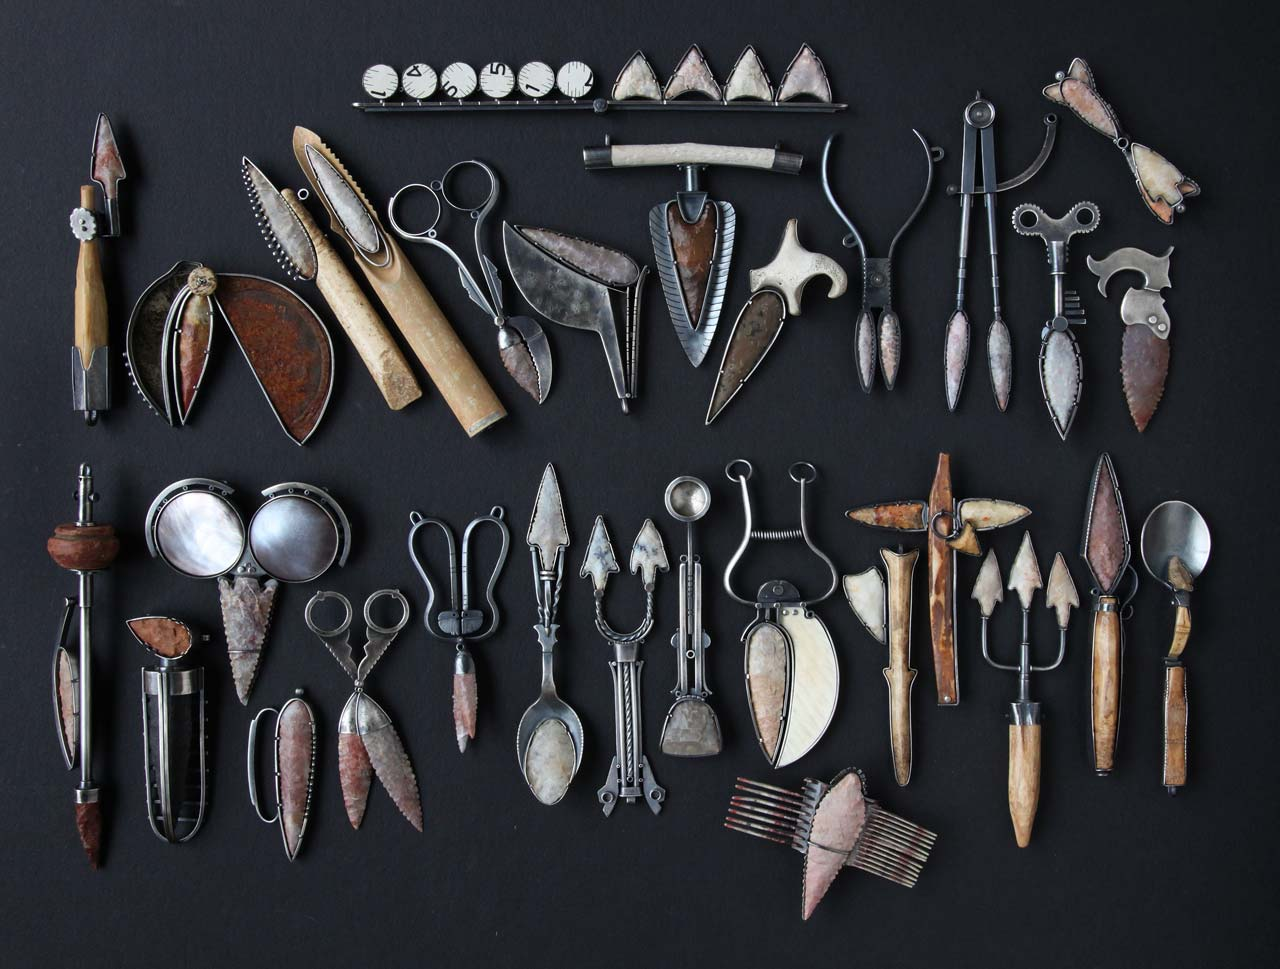 KIFF SLEMMONS'S TOOLS, gathered together here, were housed in a machinist's toolbox for display.